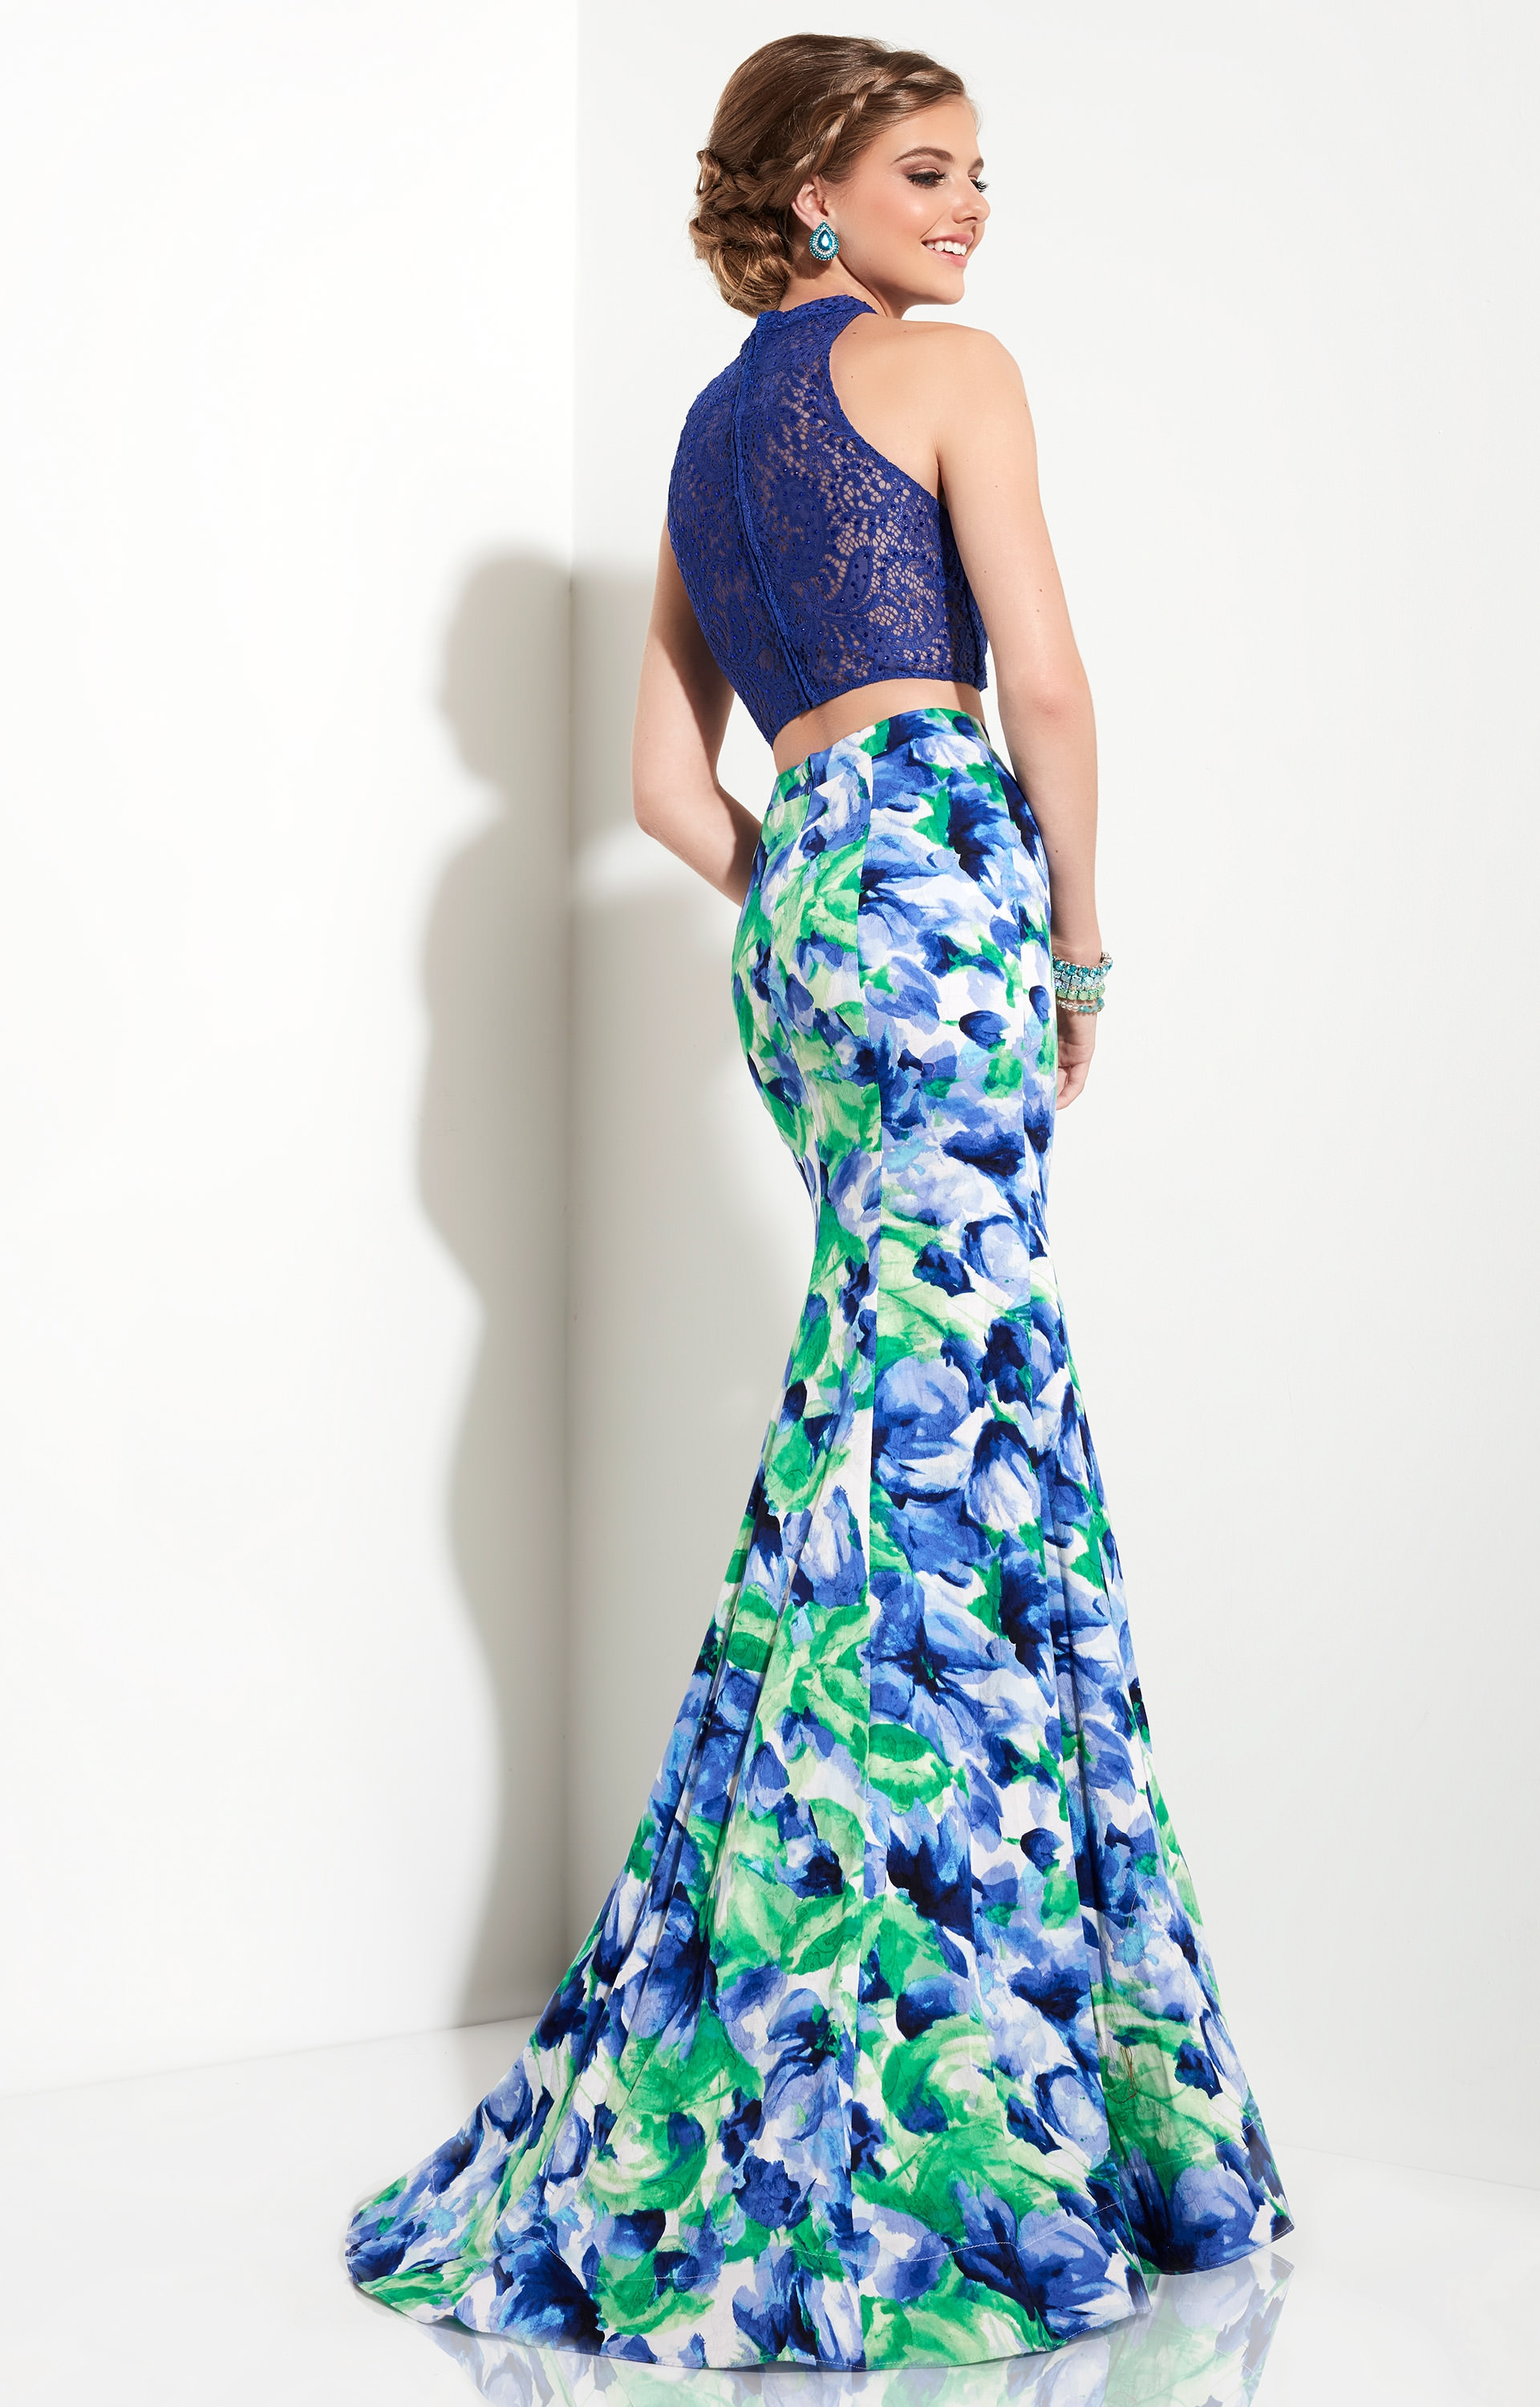 Studio 17 12620 - Printed Floral Satin Two Piece Prom Dress